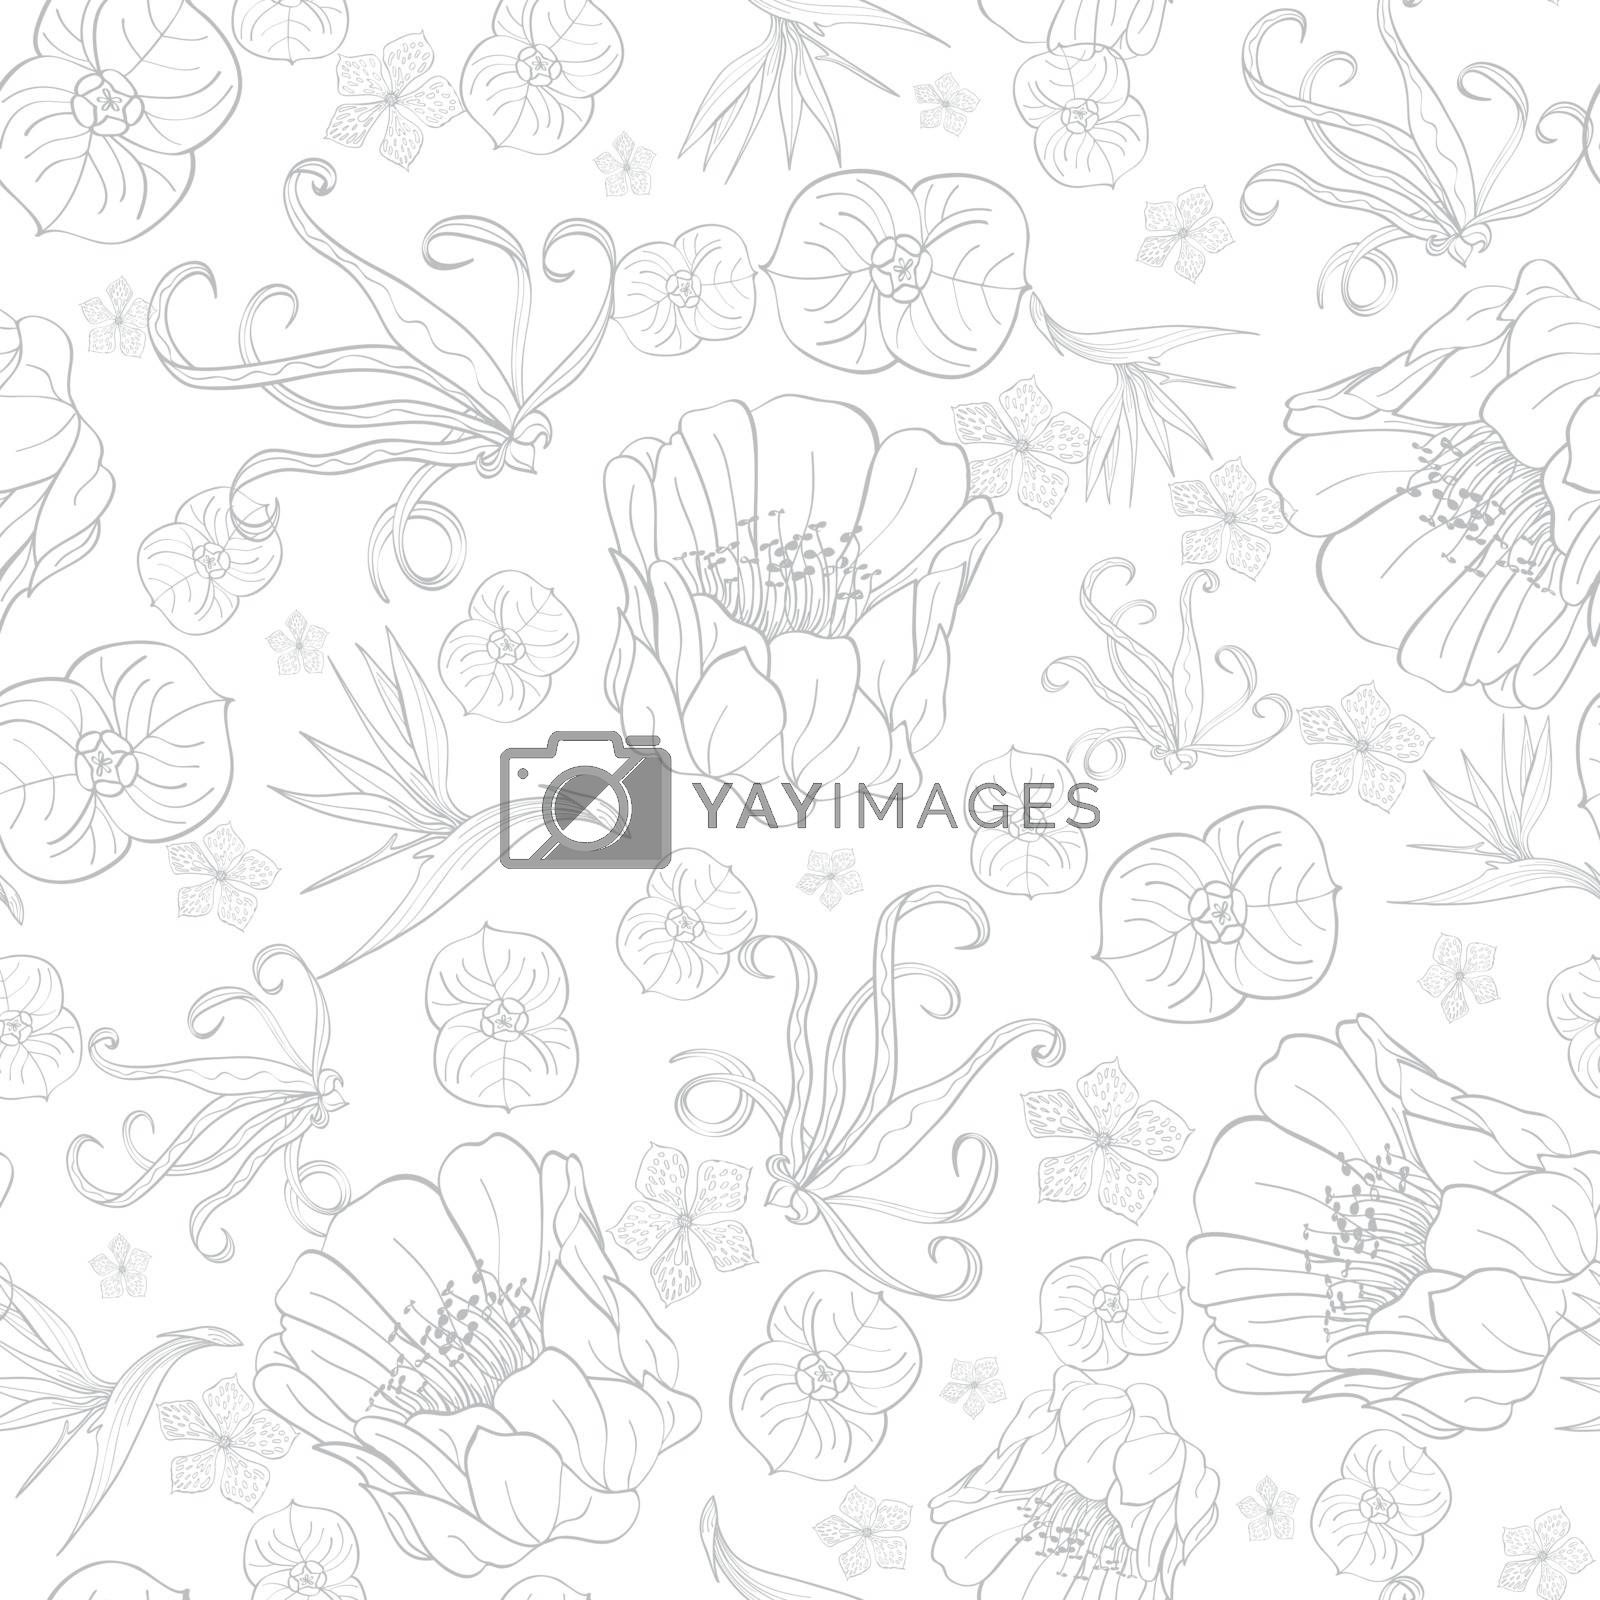 Royalty free image of Vector Gray Drawing Tropical Flowers Seamless Pattern by Oksancia